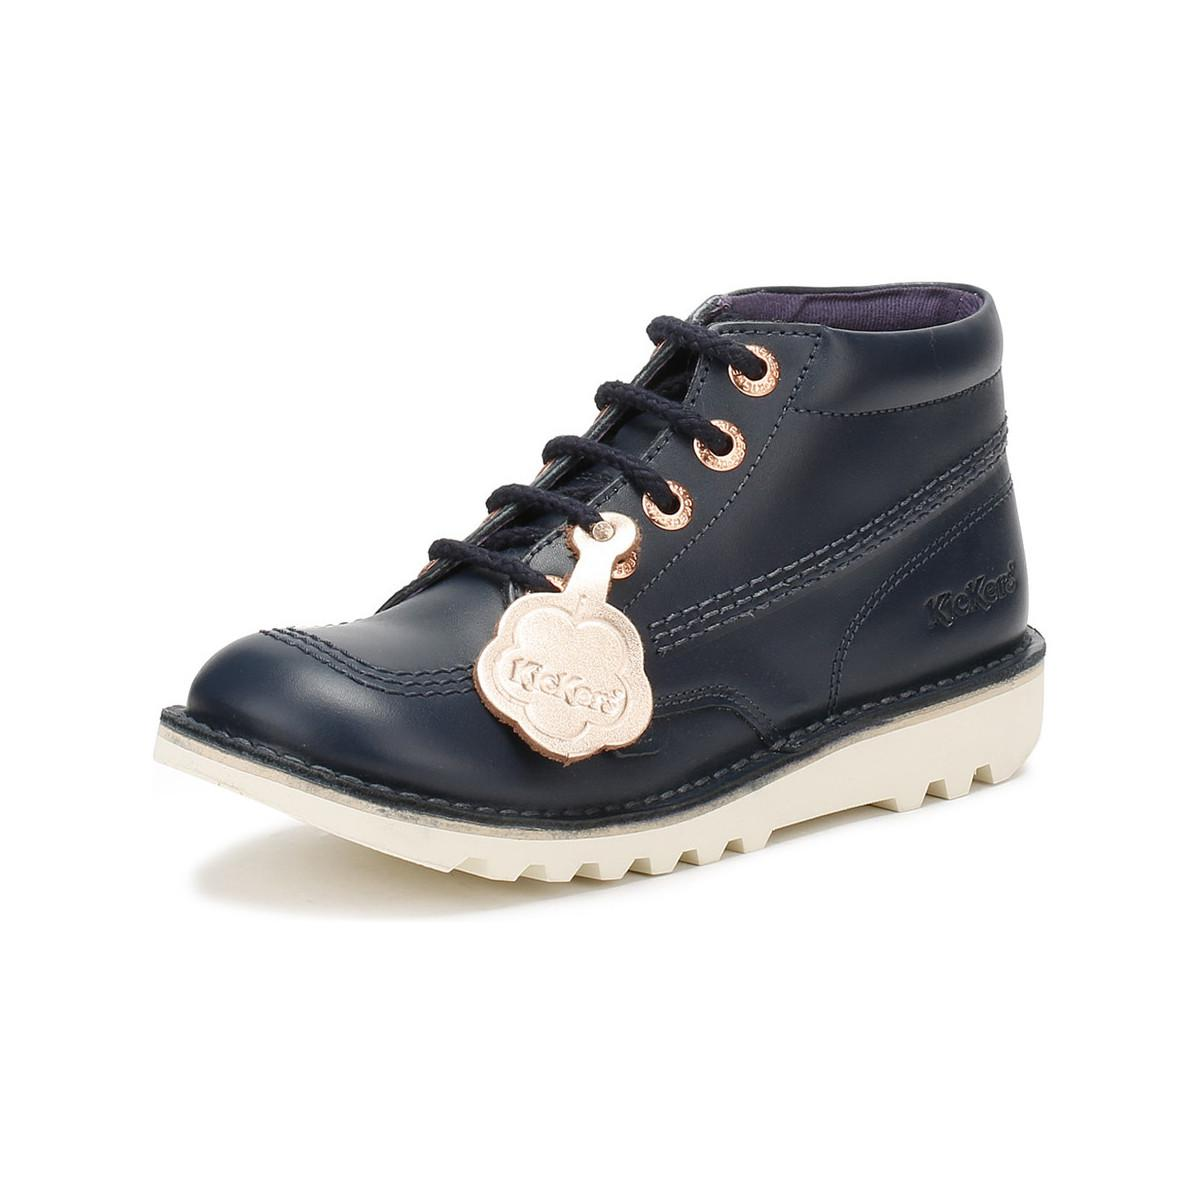 2466dc8743 Kickers - Youth Navy Leather Kick Hi Boots Girls s In Blue for Men - Lyst.  View fullscreen